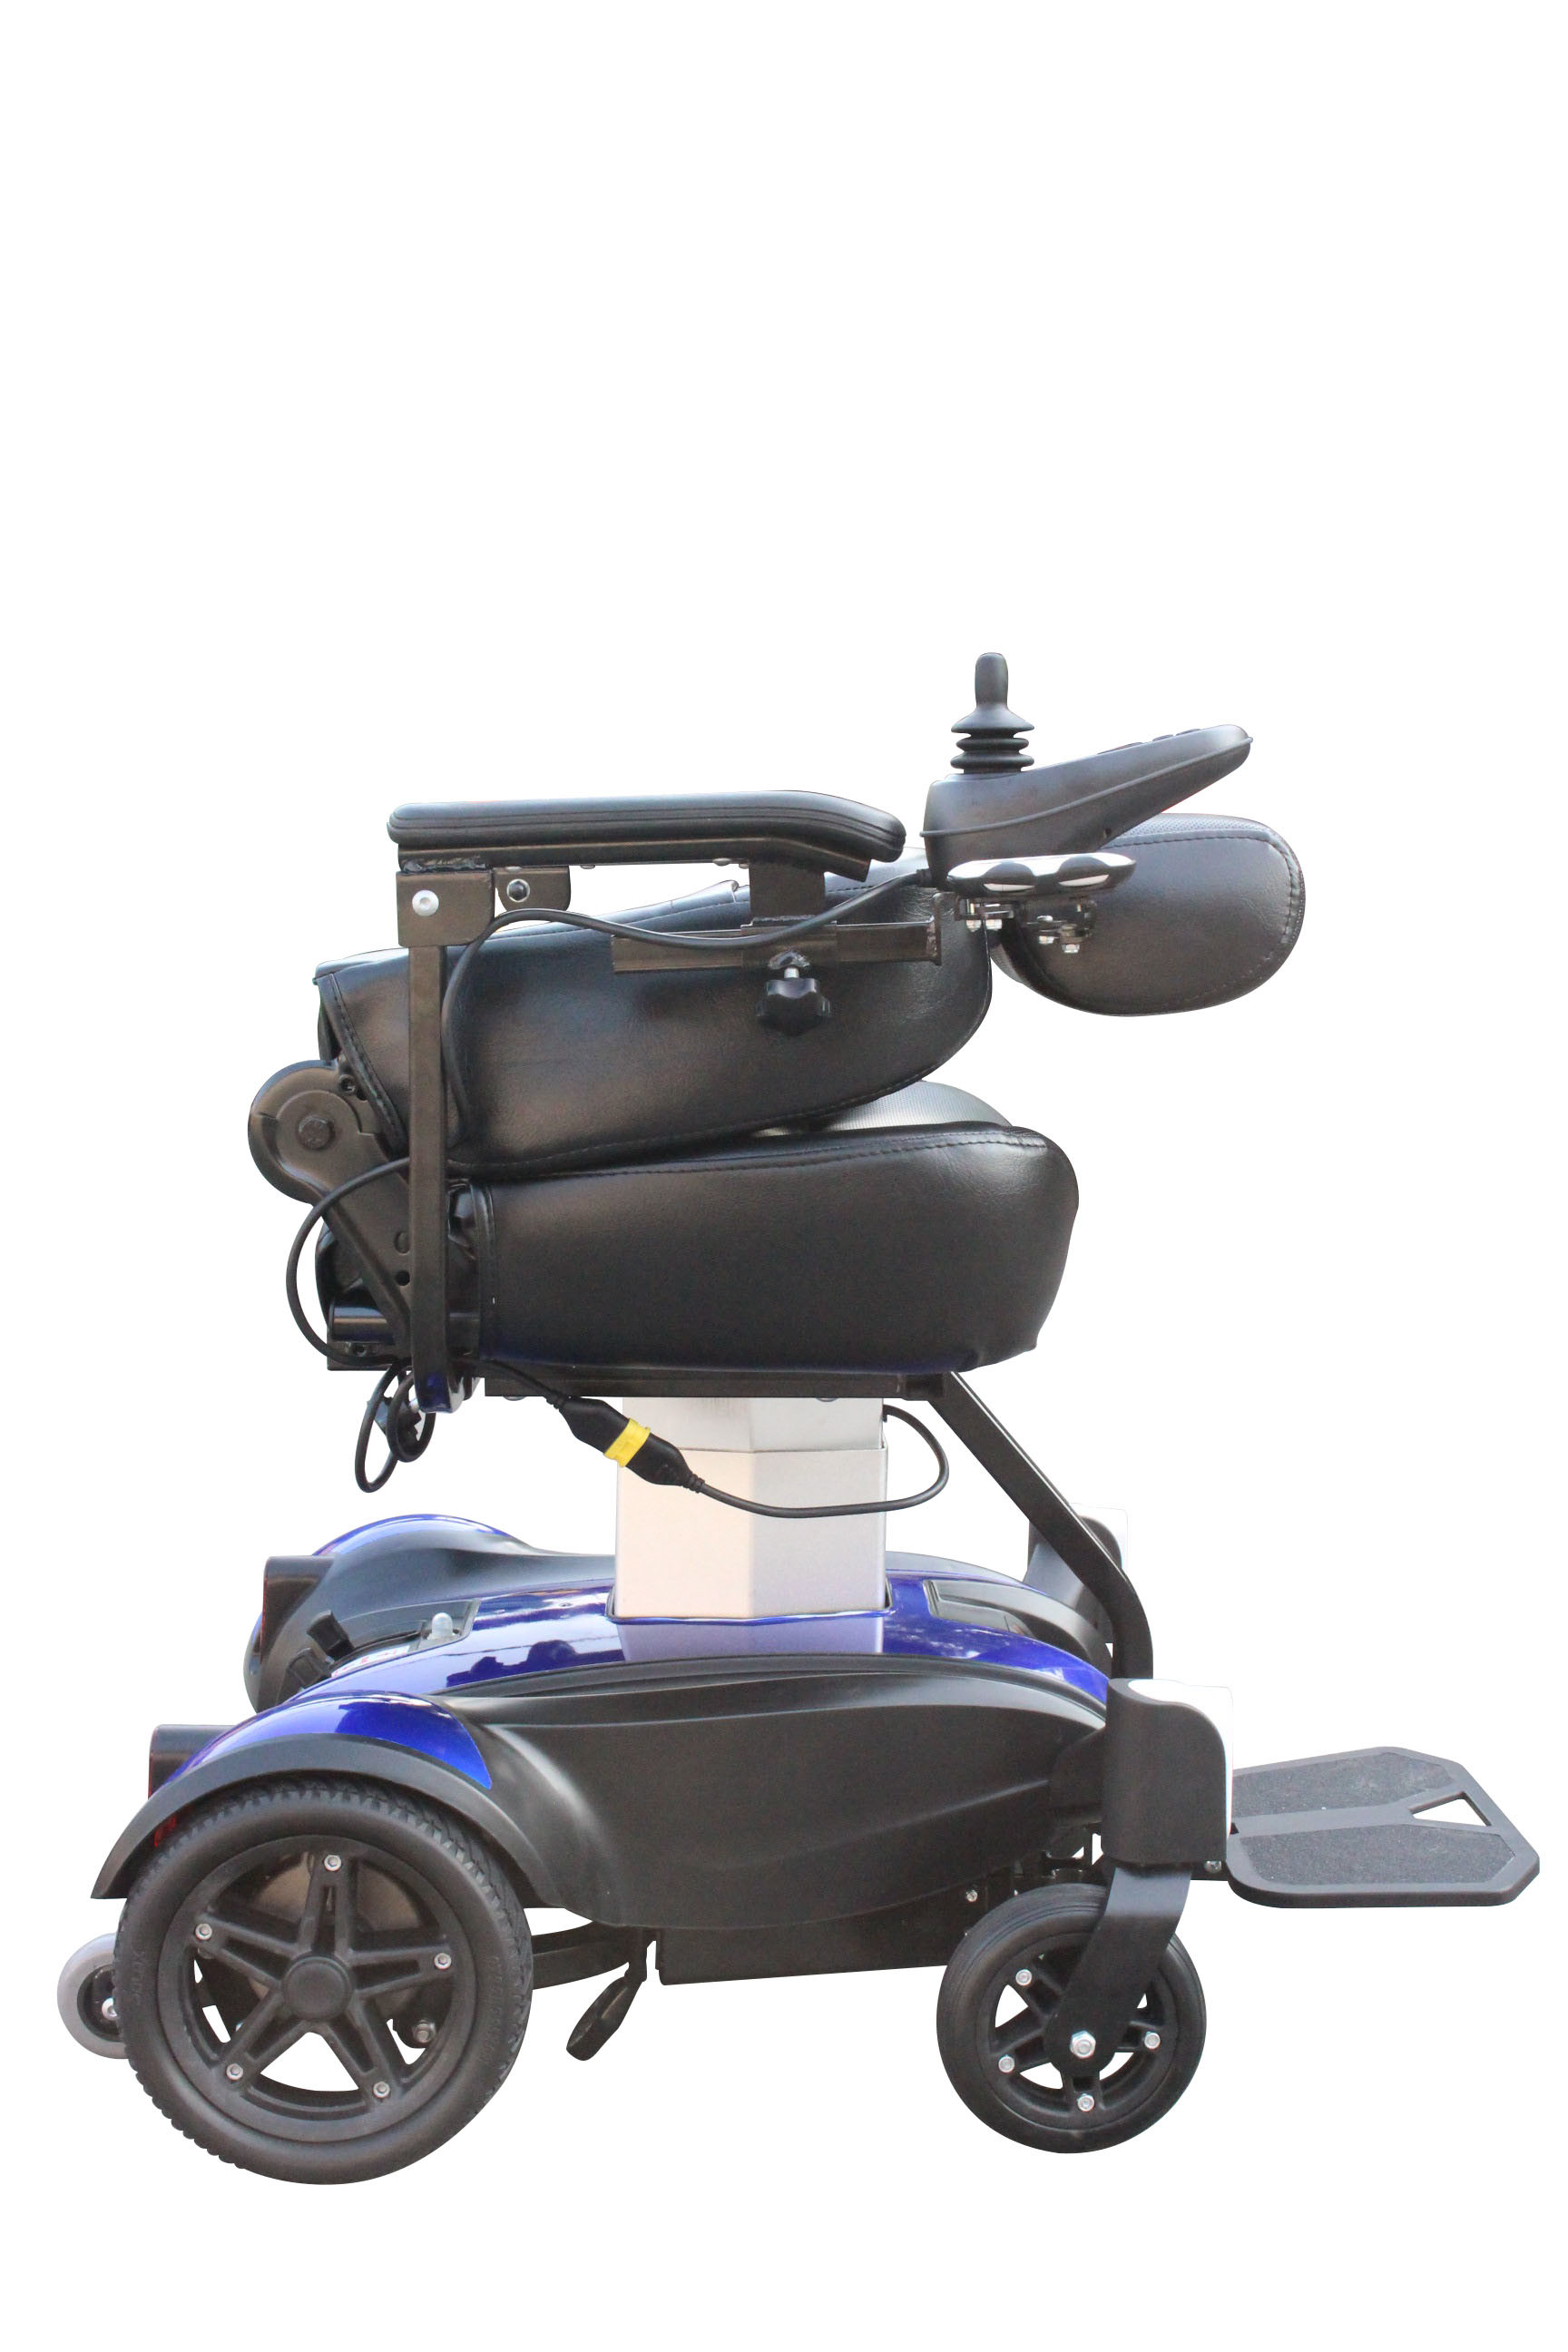 China solax auto remote power lift wheelchair photos for Motorized wheelchair lifts for cars